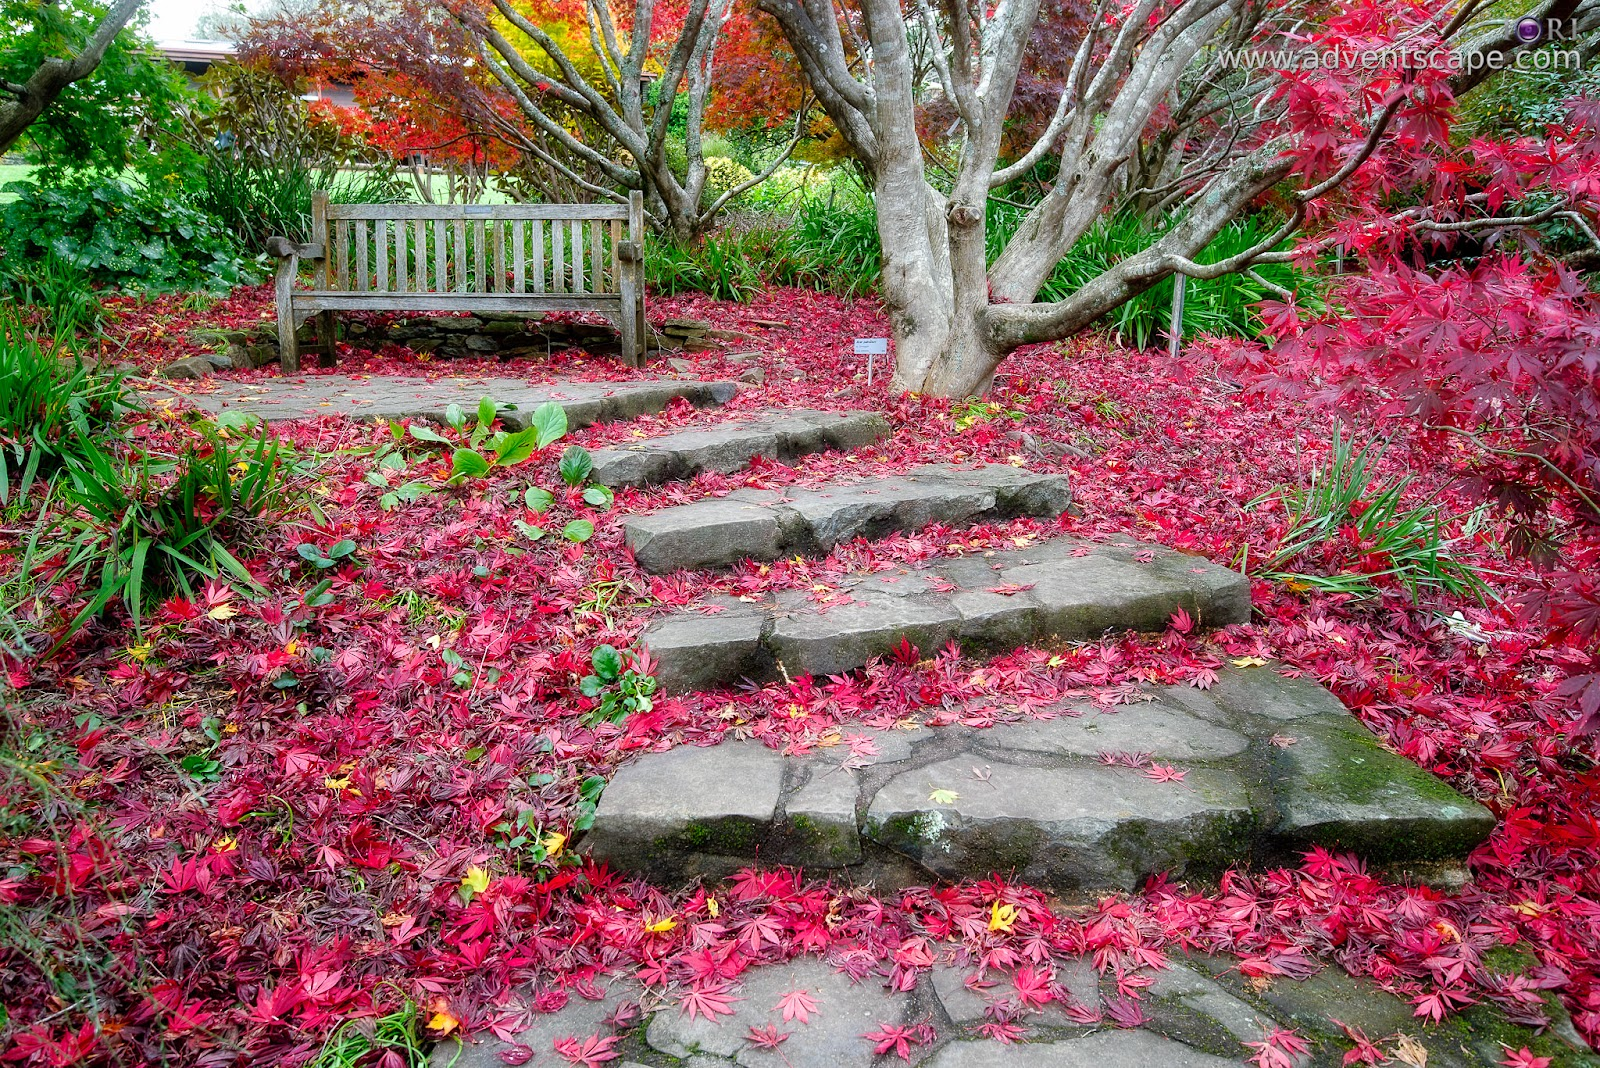 adventscape, Australia, Blue Mountain, Botanical Gardens, iori, Mount Tomah, New South Wales, NSW, Philip Avellana, tourism, travel, fall, autumn, bench, fallen leaves, maple